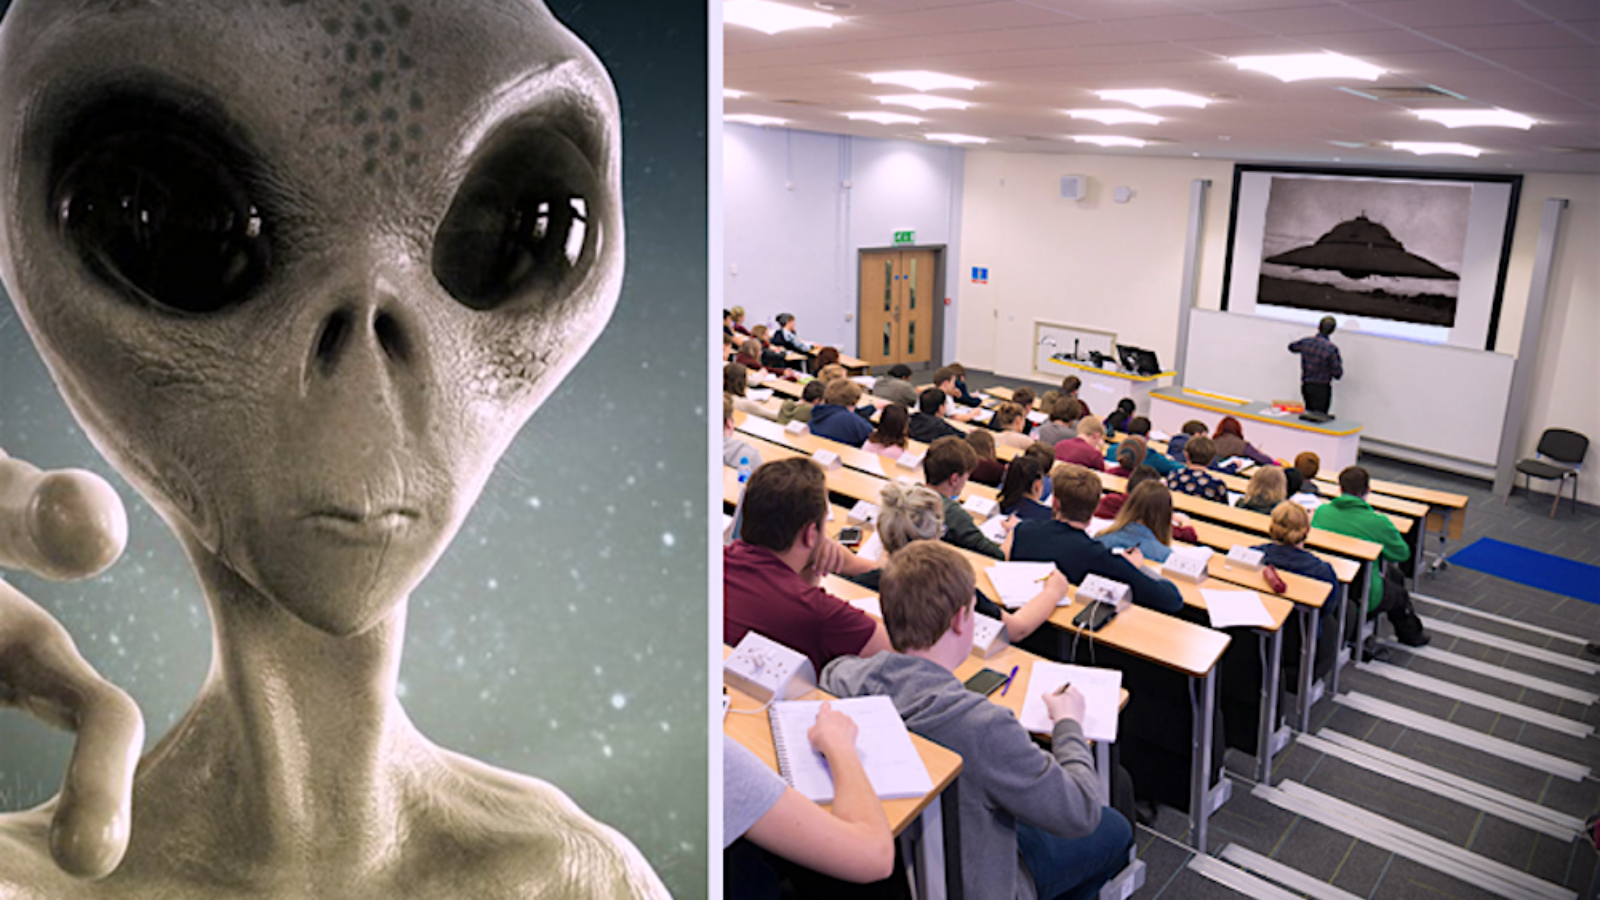 University Implements Course About Aliens To Prepare People For Extraterrestrial Contact